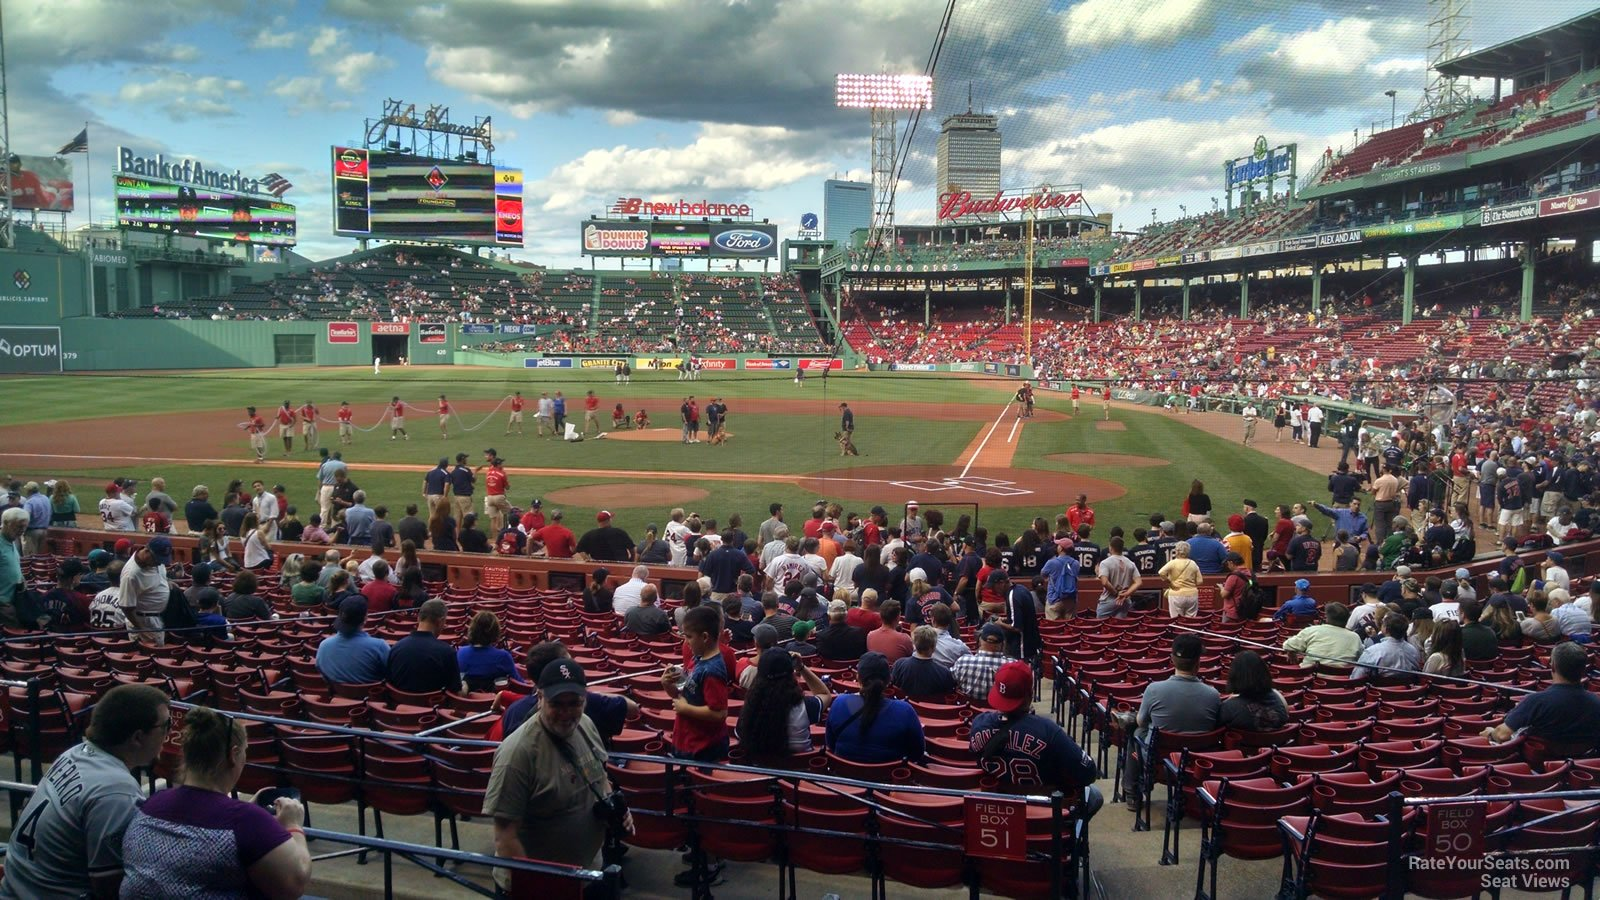 Fenway Park Loge Box 137 Rateyourseats Com